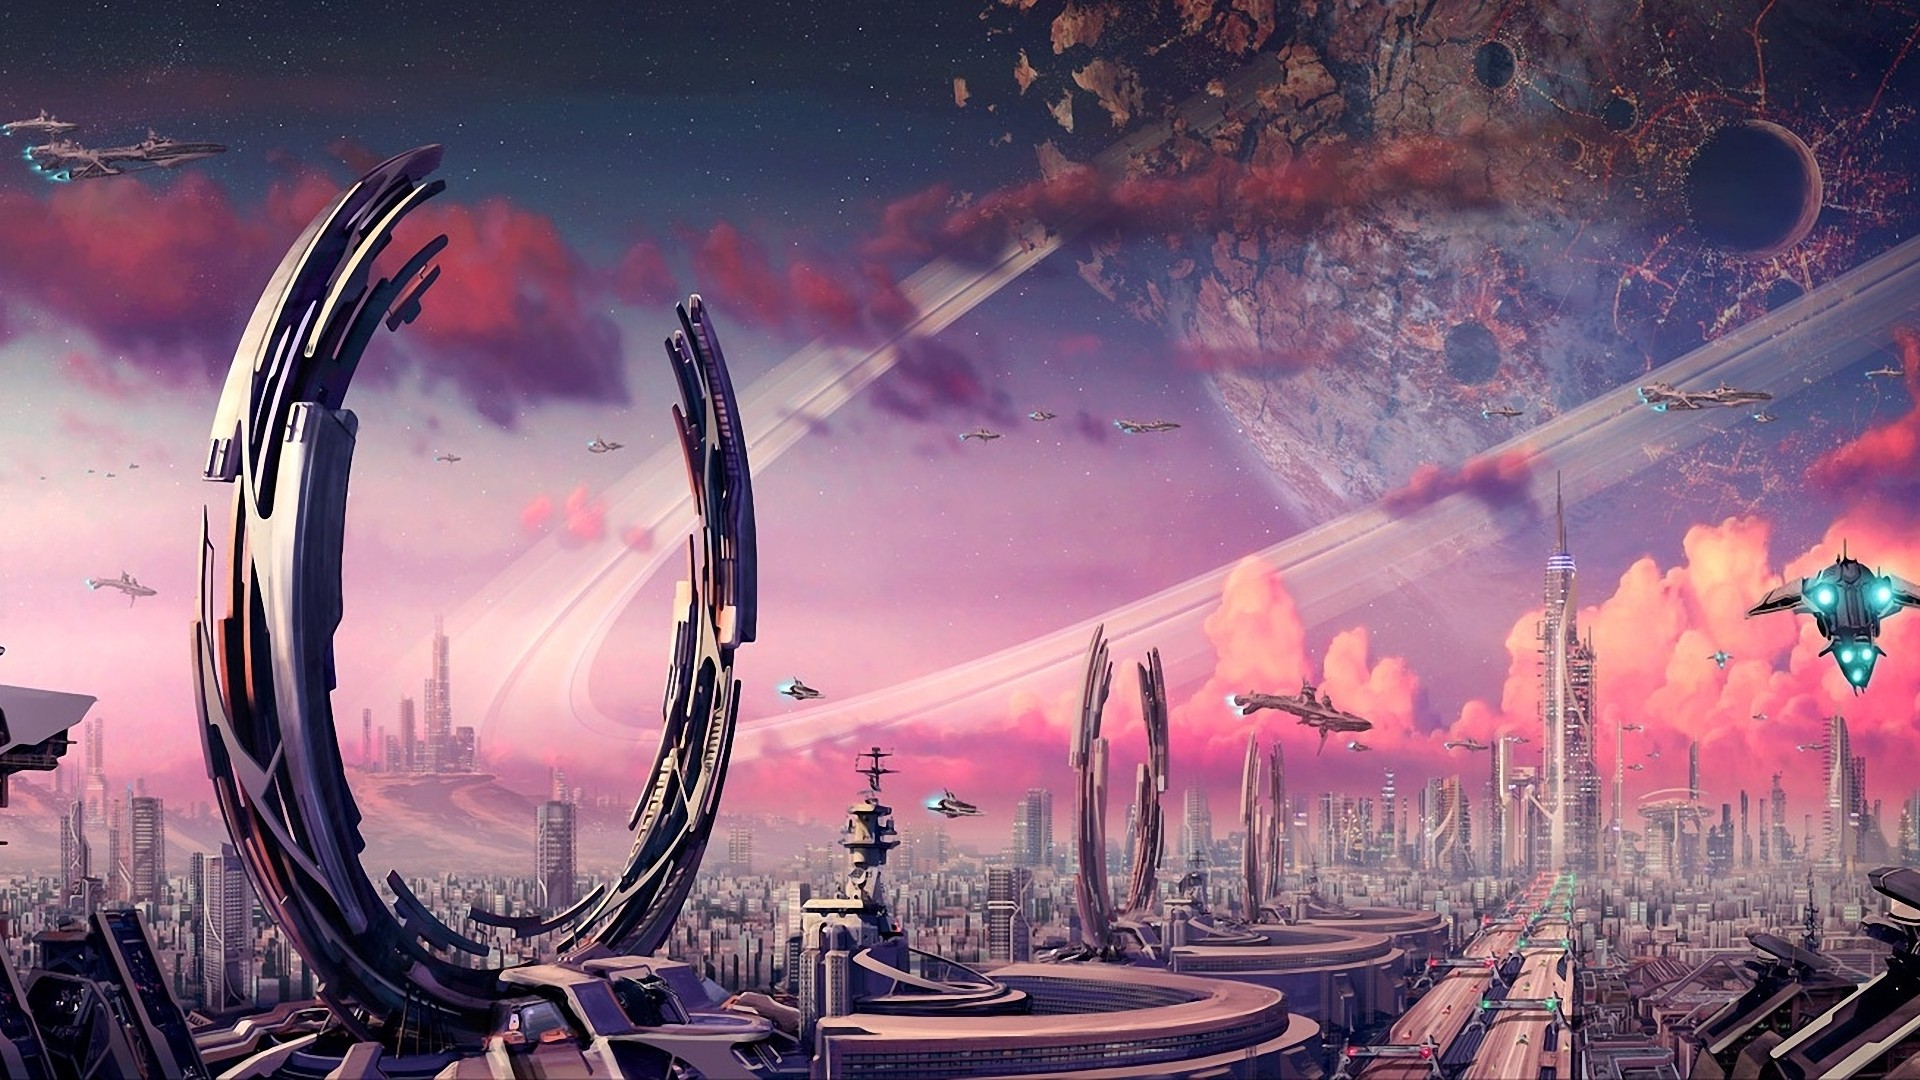 sci fi cities on other planets - photo #7